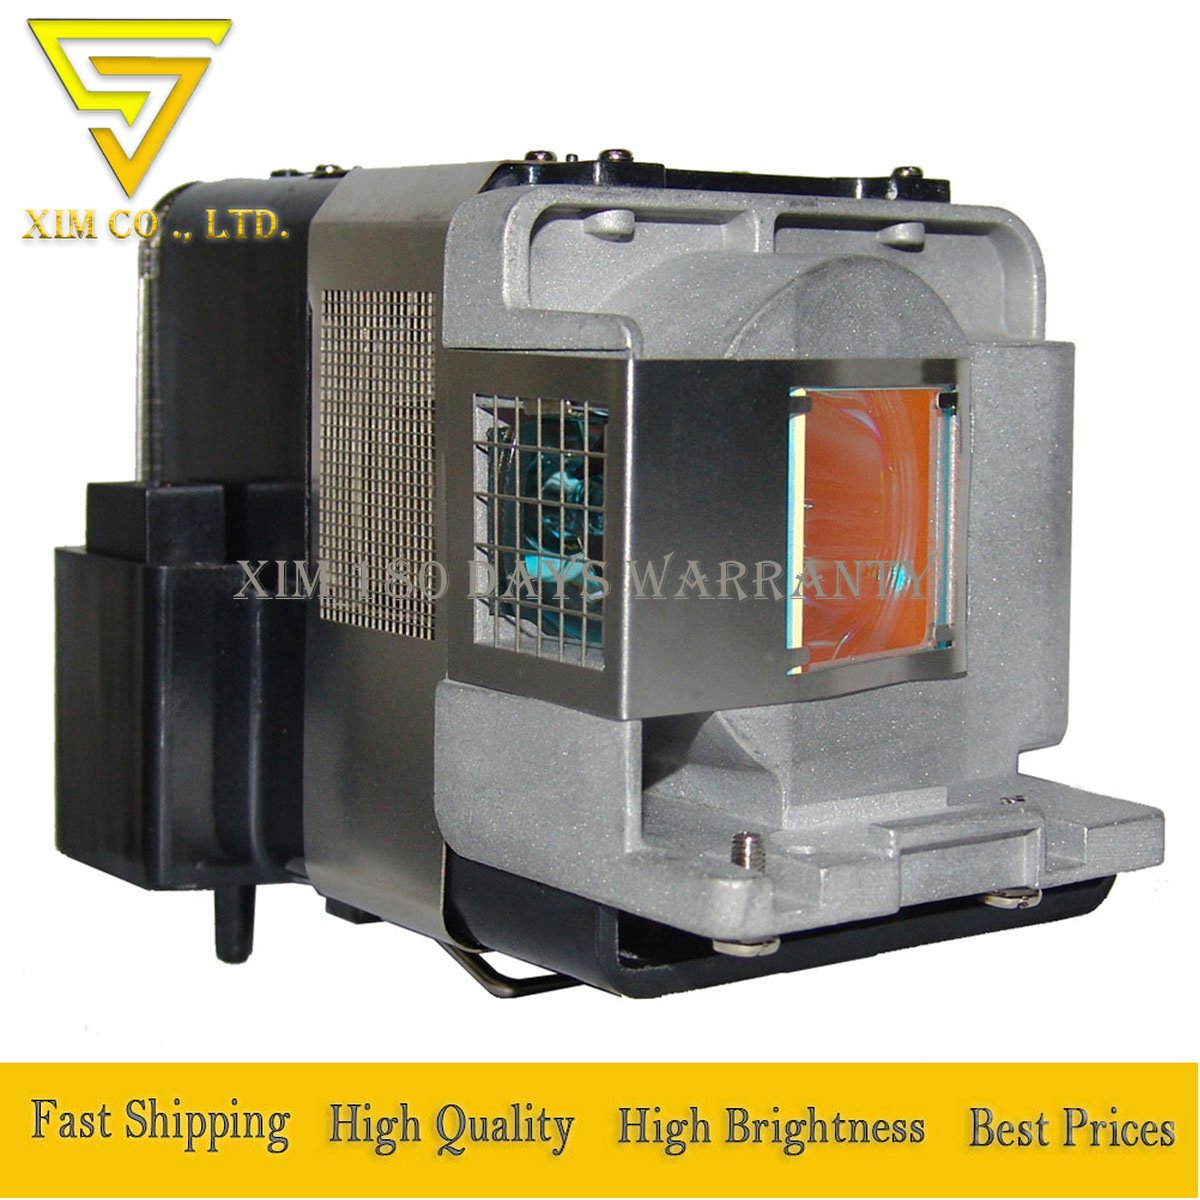 P-VIP 230/0.8 E20.8 High Quality Bulbs 5J.J4G05.001 Replacement Projector Lamp With Housing For BenQ W1100 W1200 Projector